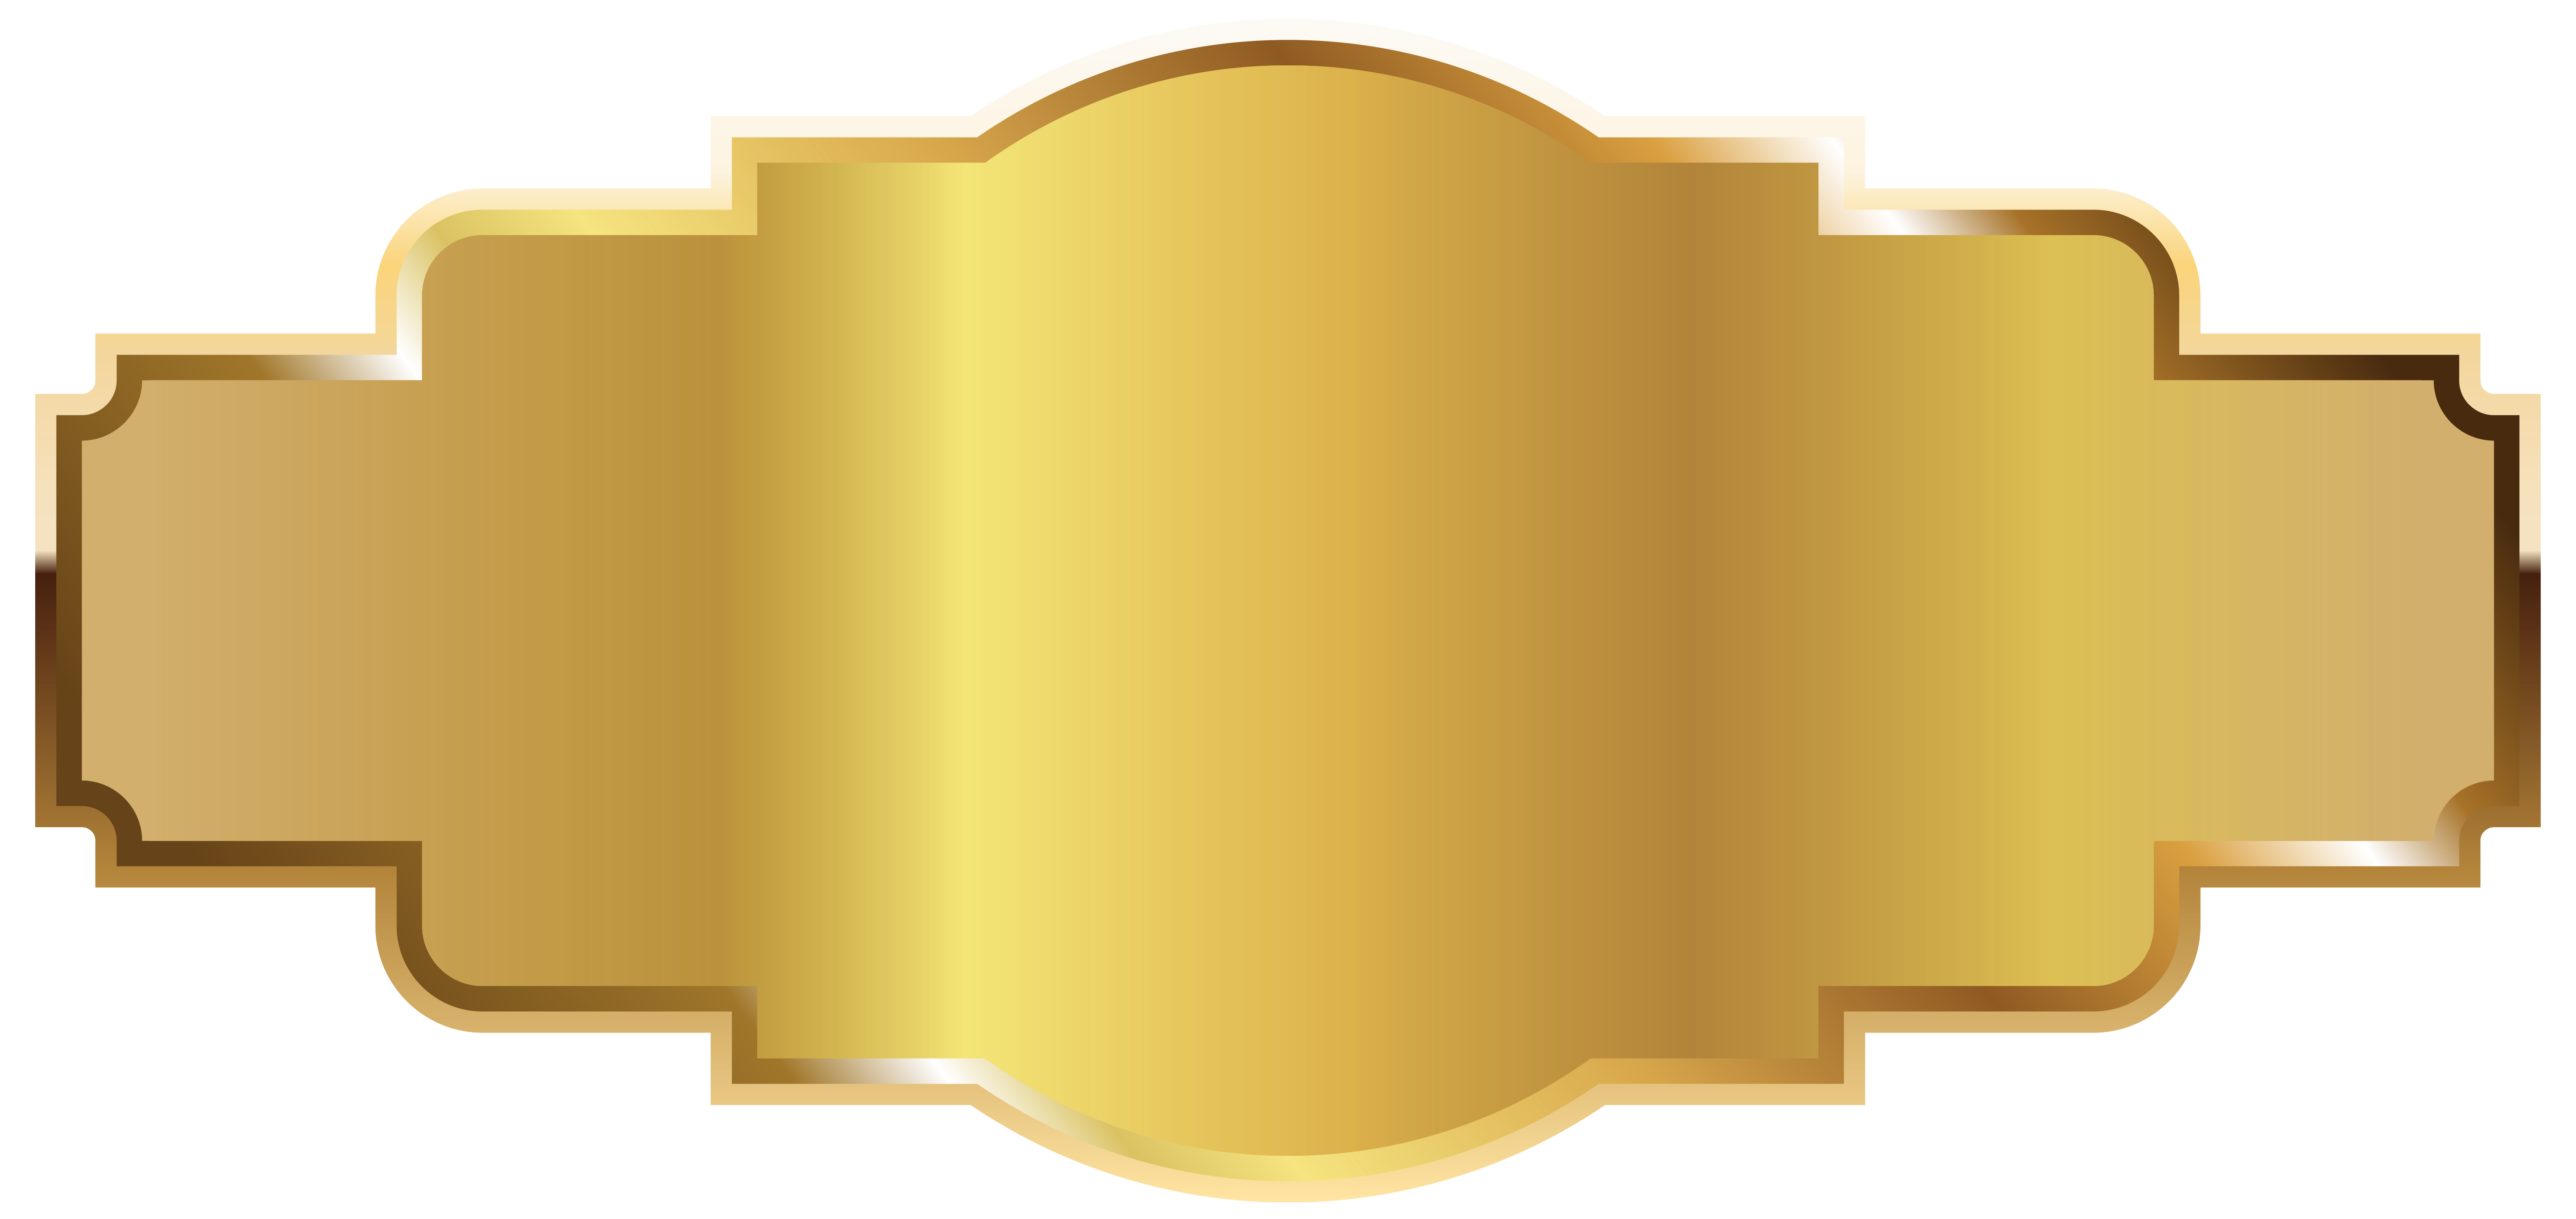 Gold Label Template PNG Image.